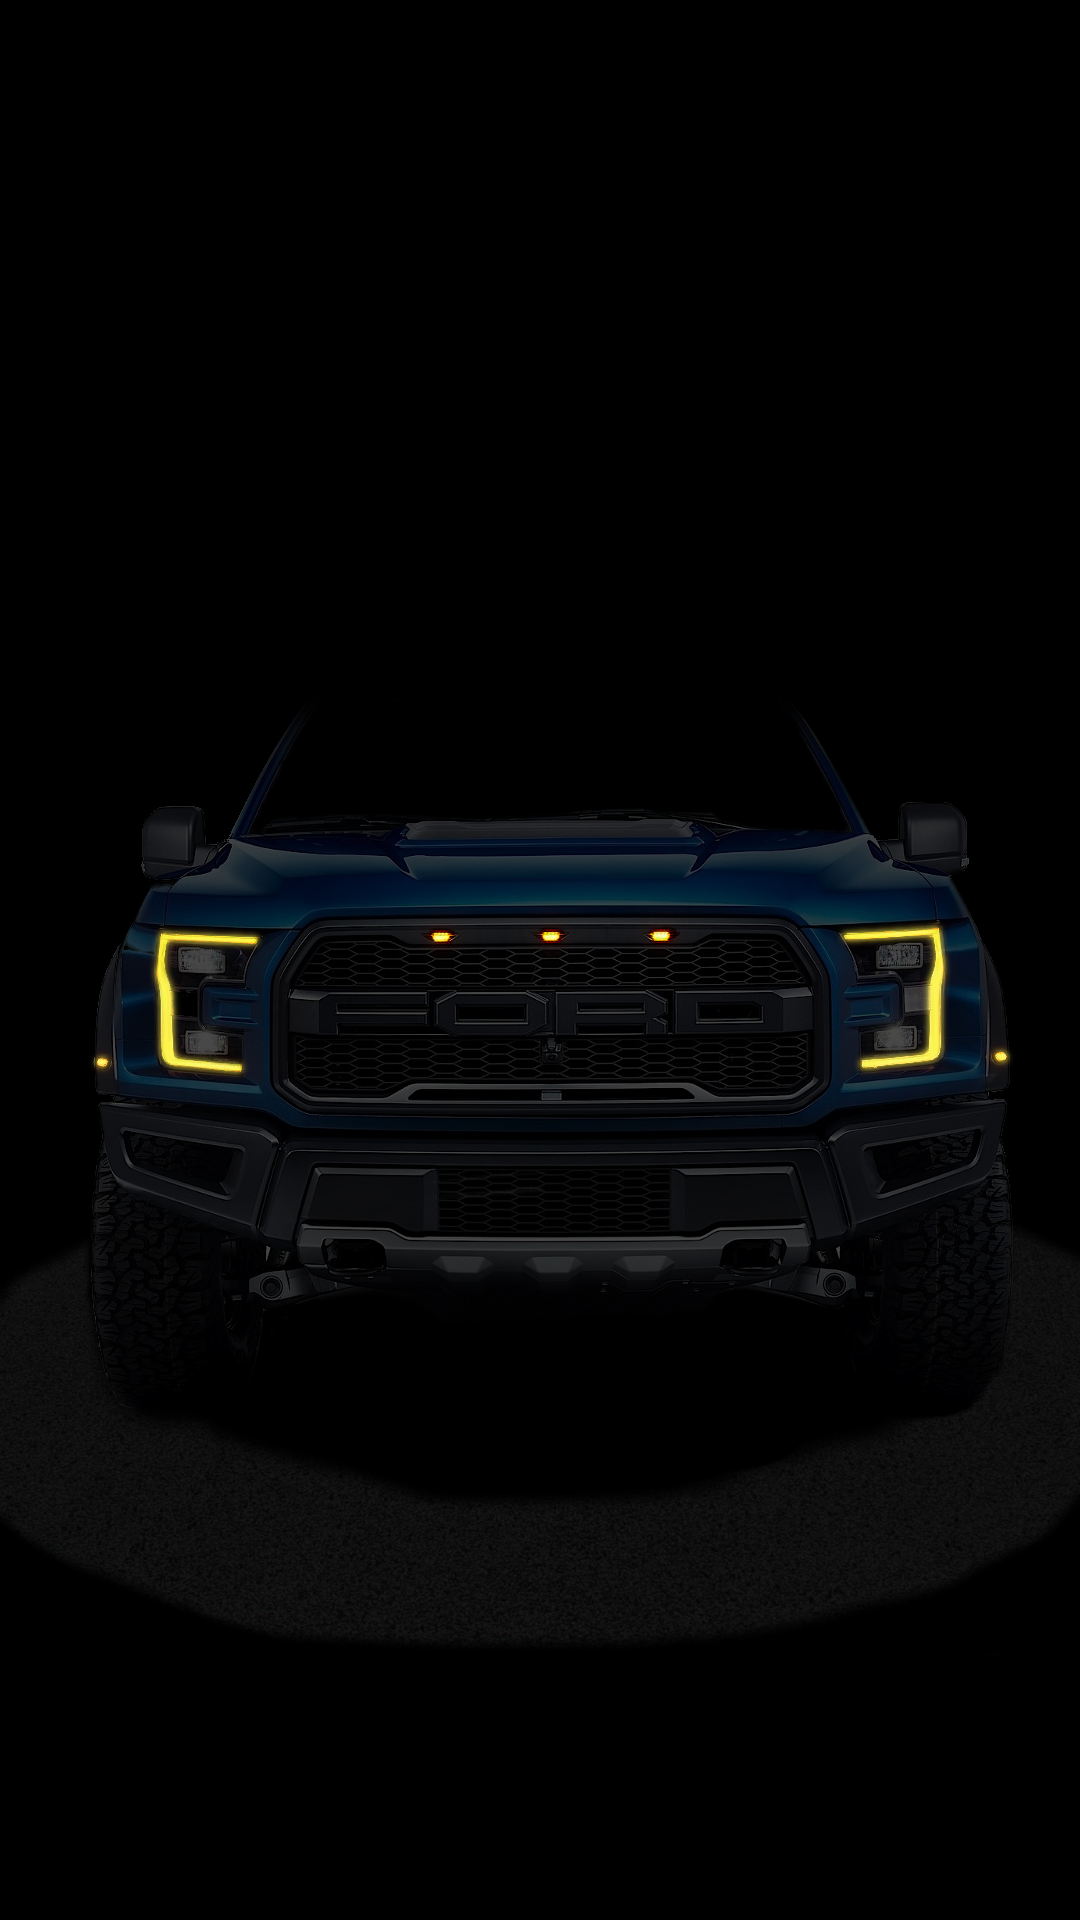 Black Ford Raptor Wallpapers Top Free Black Ford Raptor Backgrounds Wallpaperaccess